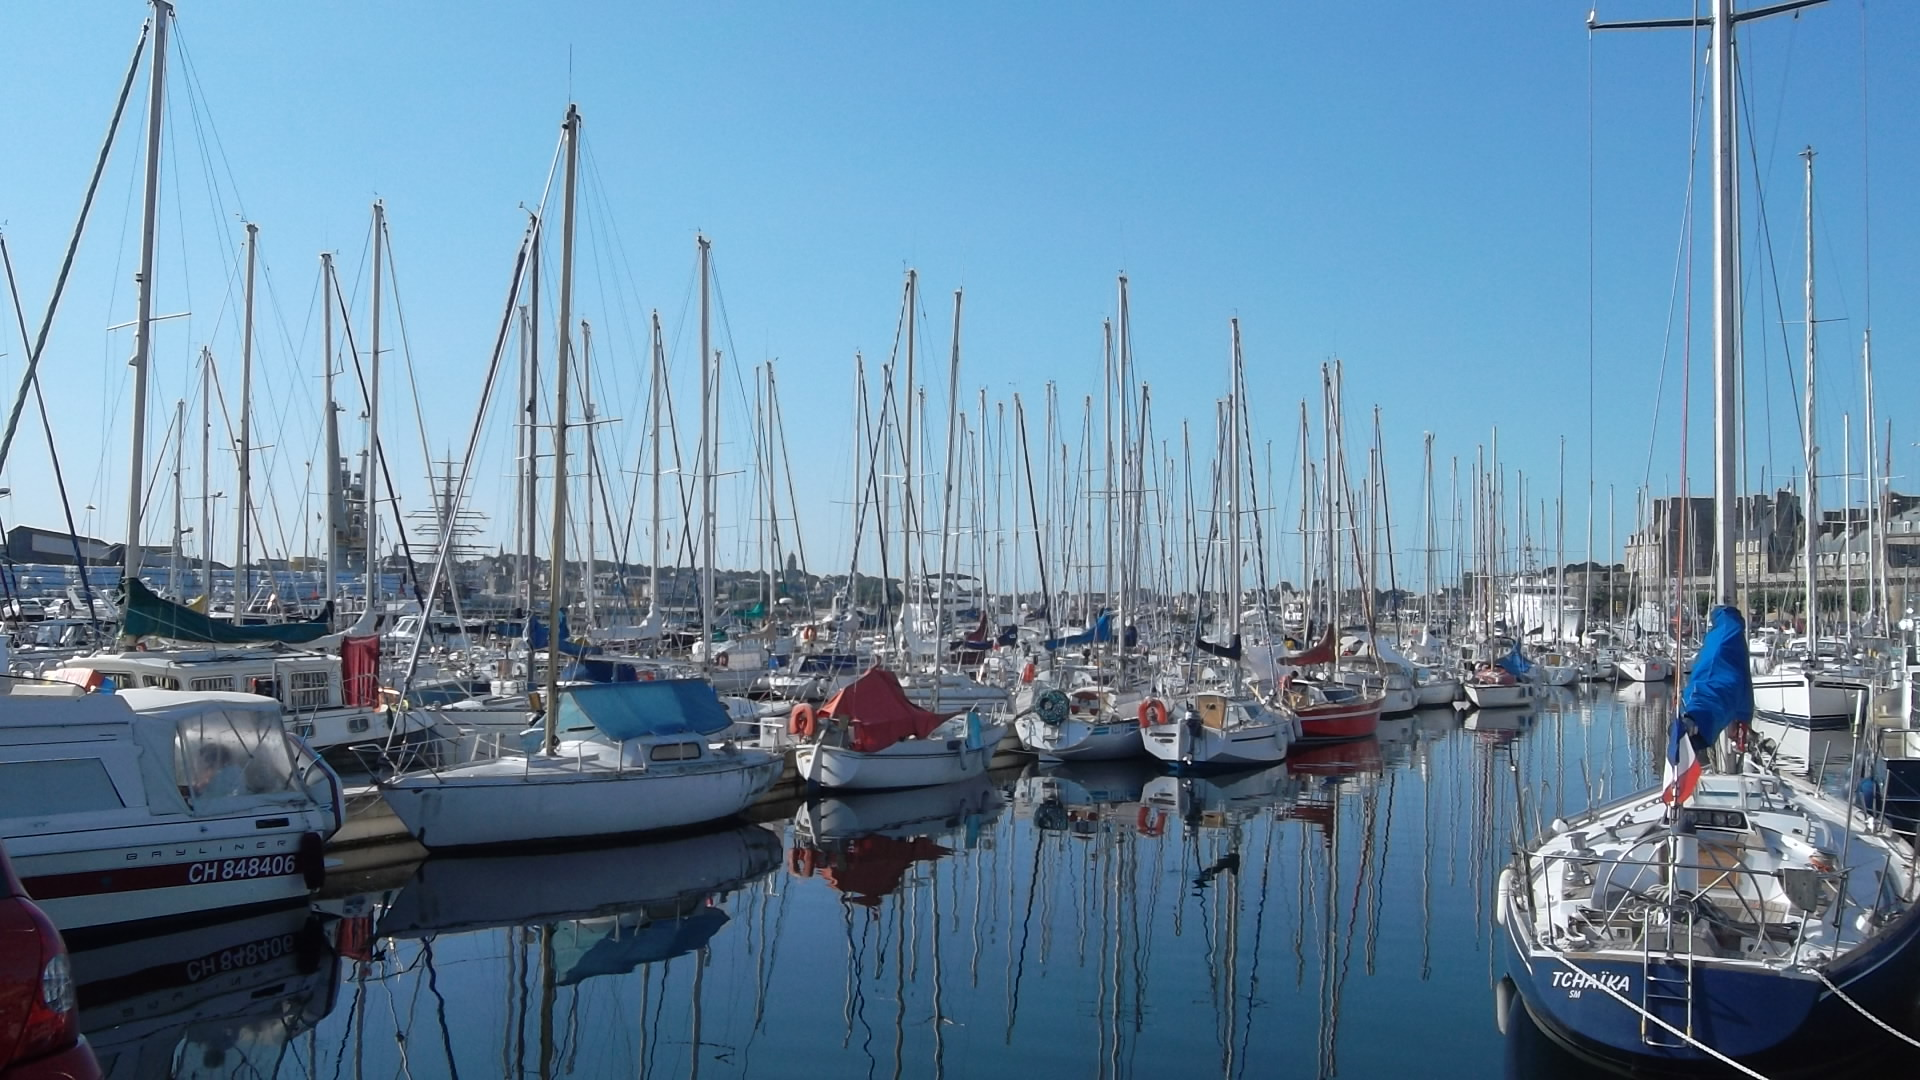 st-malo-inner-harbor-bassin-vauban-aug12